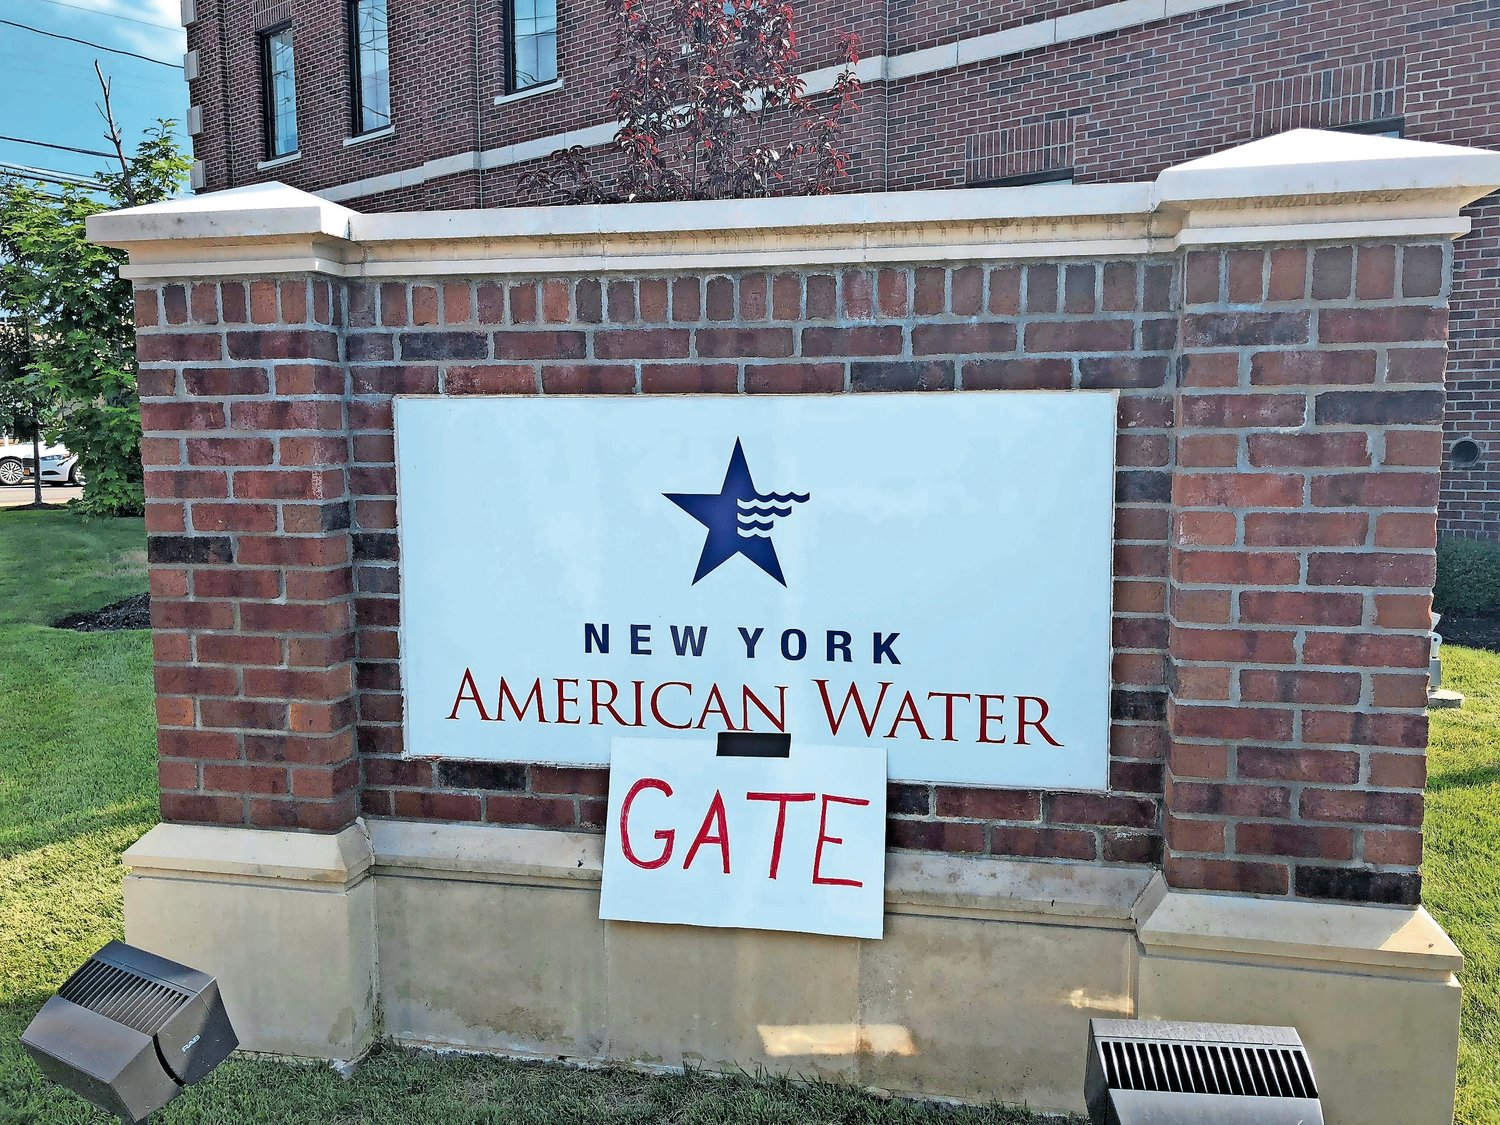 Residents and officials are frustrated by New York American Water's recent rate hikes, the highest of which have hit the Lynbrook service area.